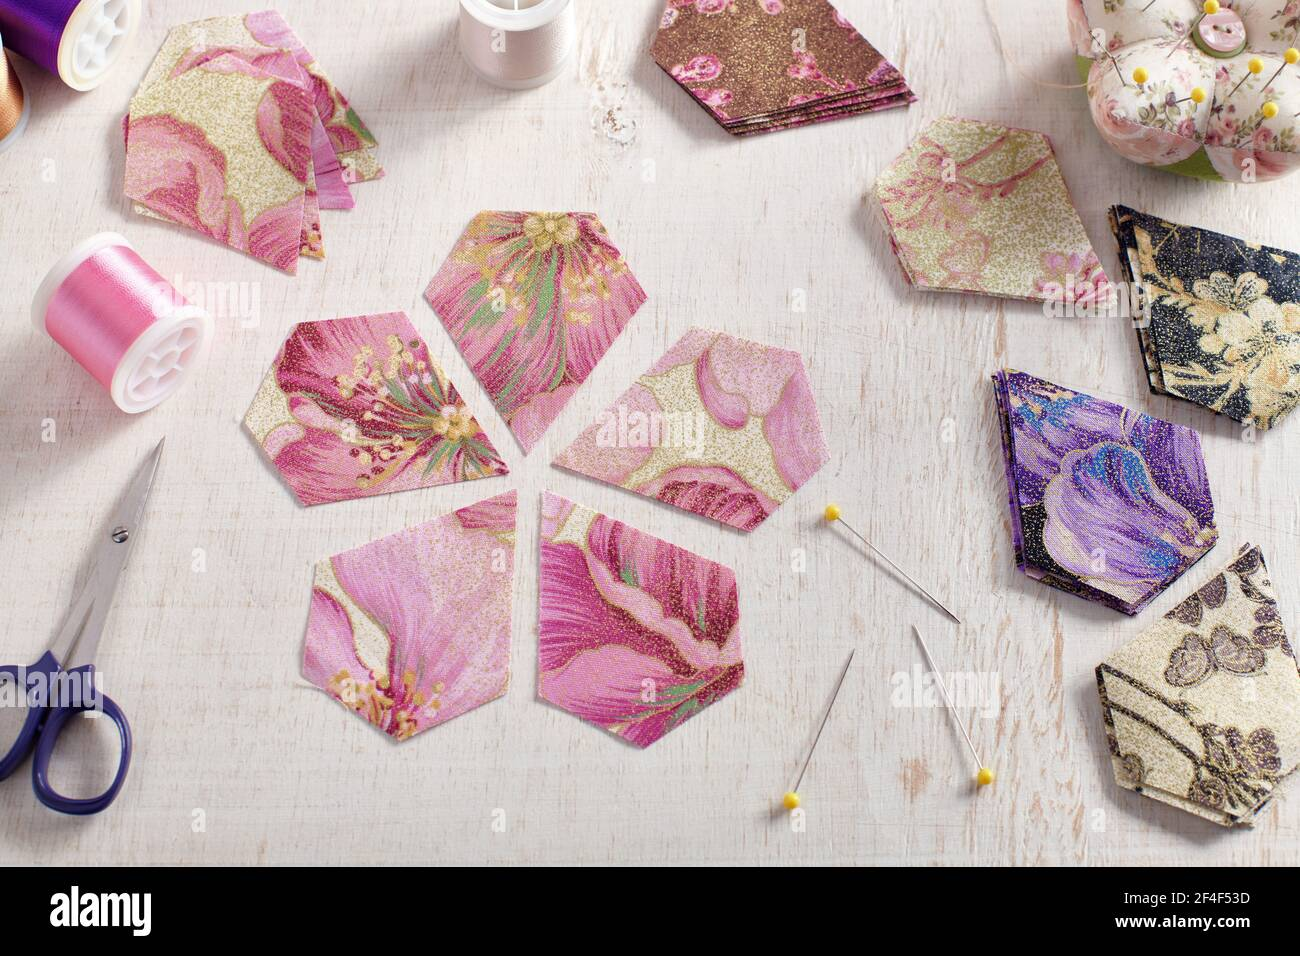 Pentagonal pieces of fabric lying in the shape of a flower, stacks of multi-colored pieces of fabric, sewing accessories on a white surface Stock Photo